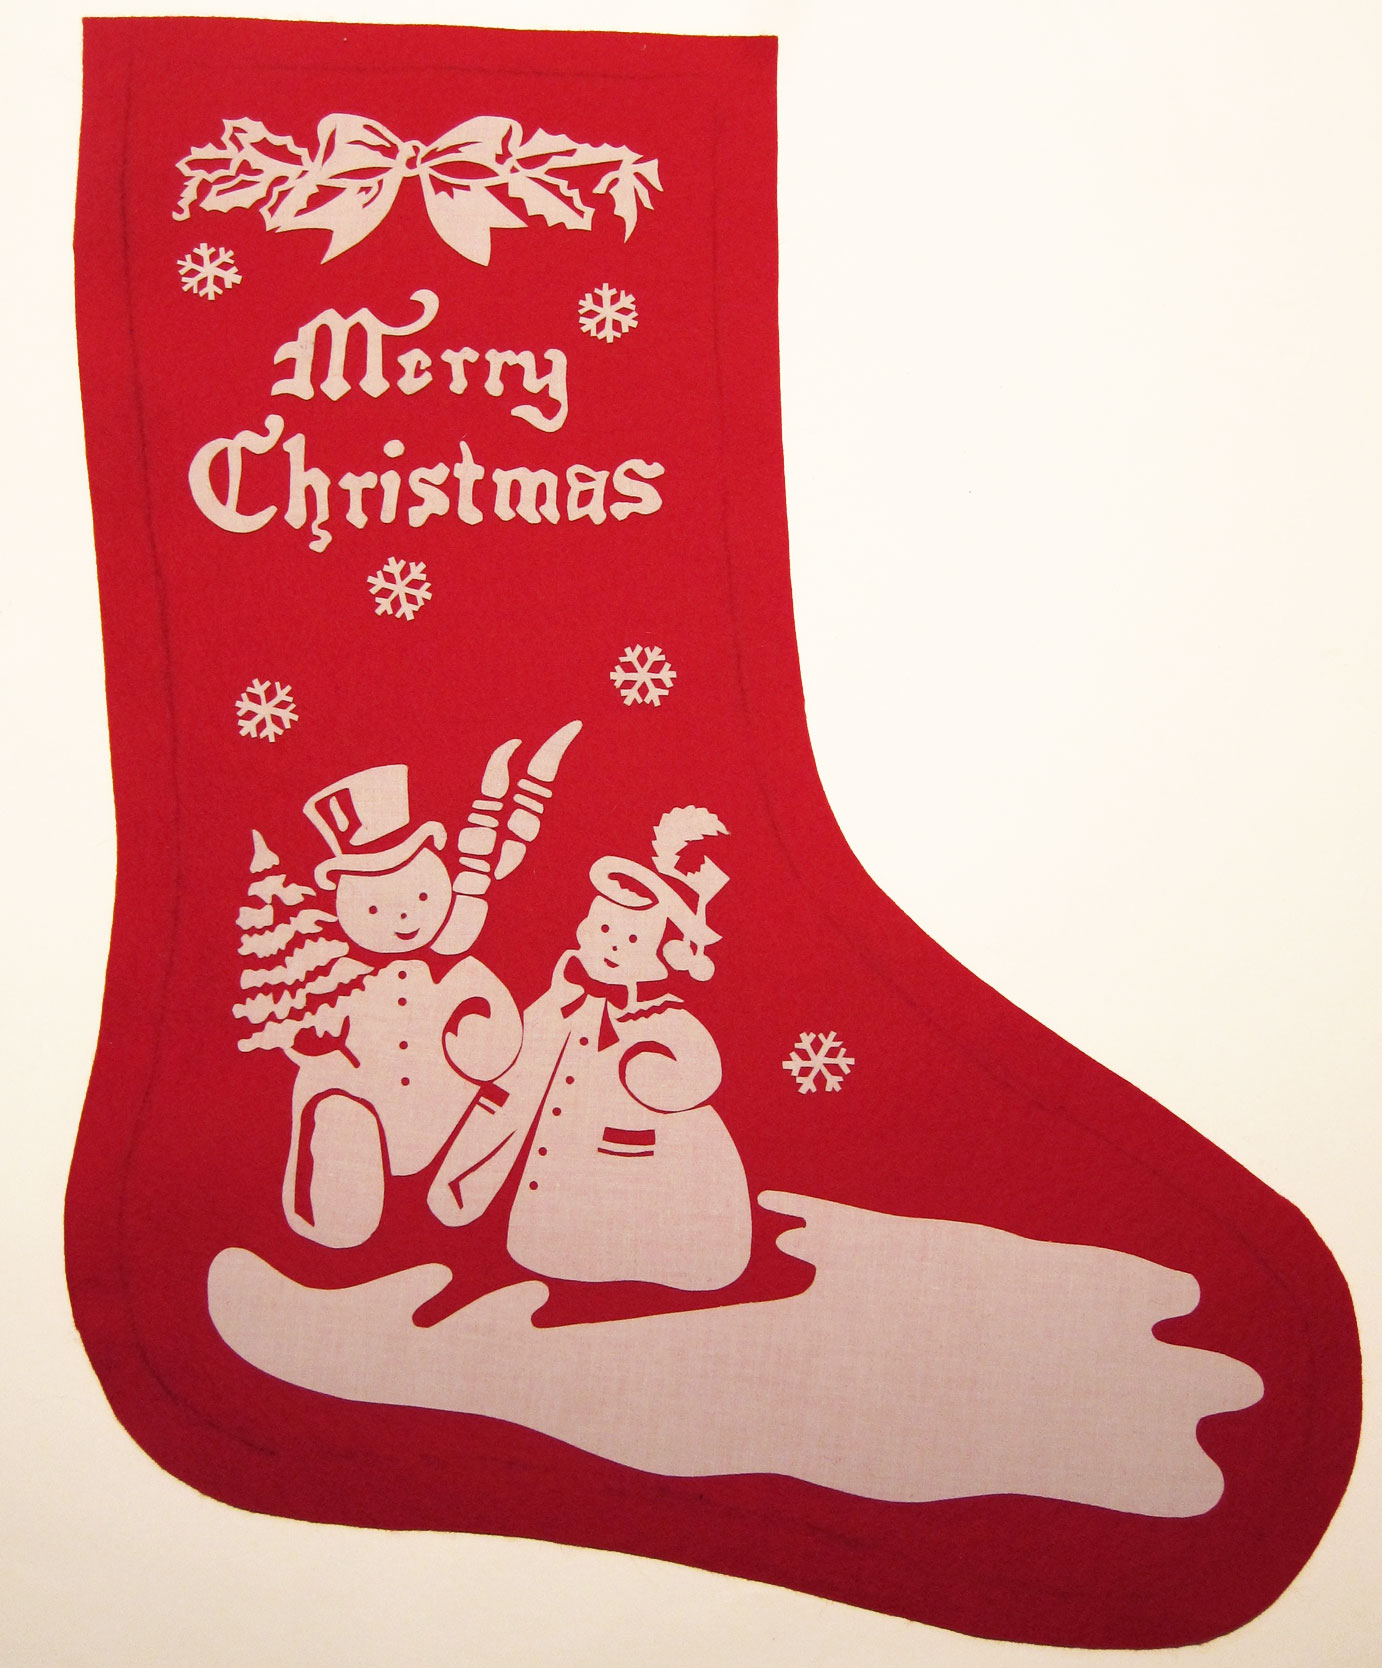 Stenciled-Christmas-Stocking-WIP